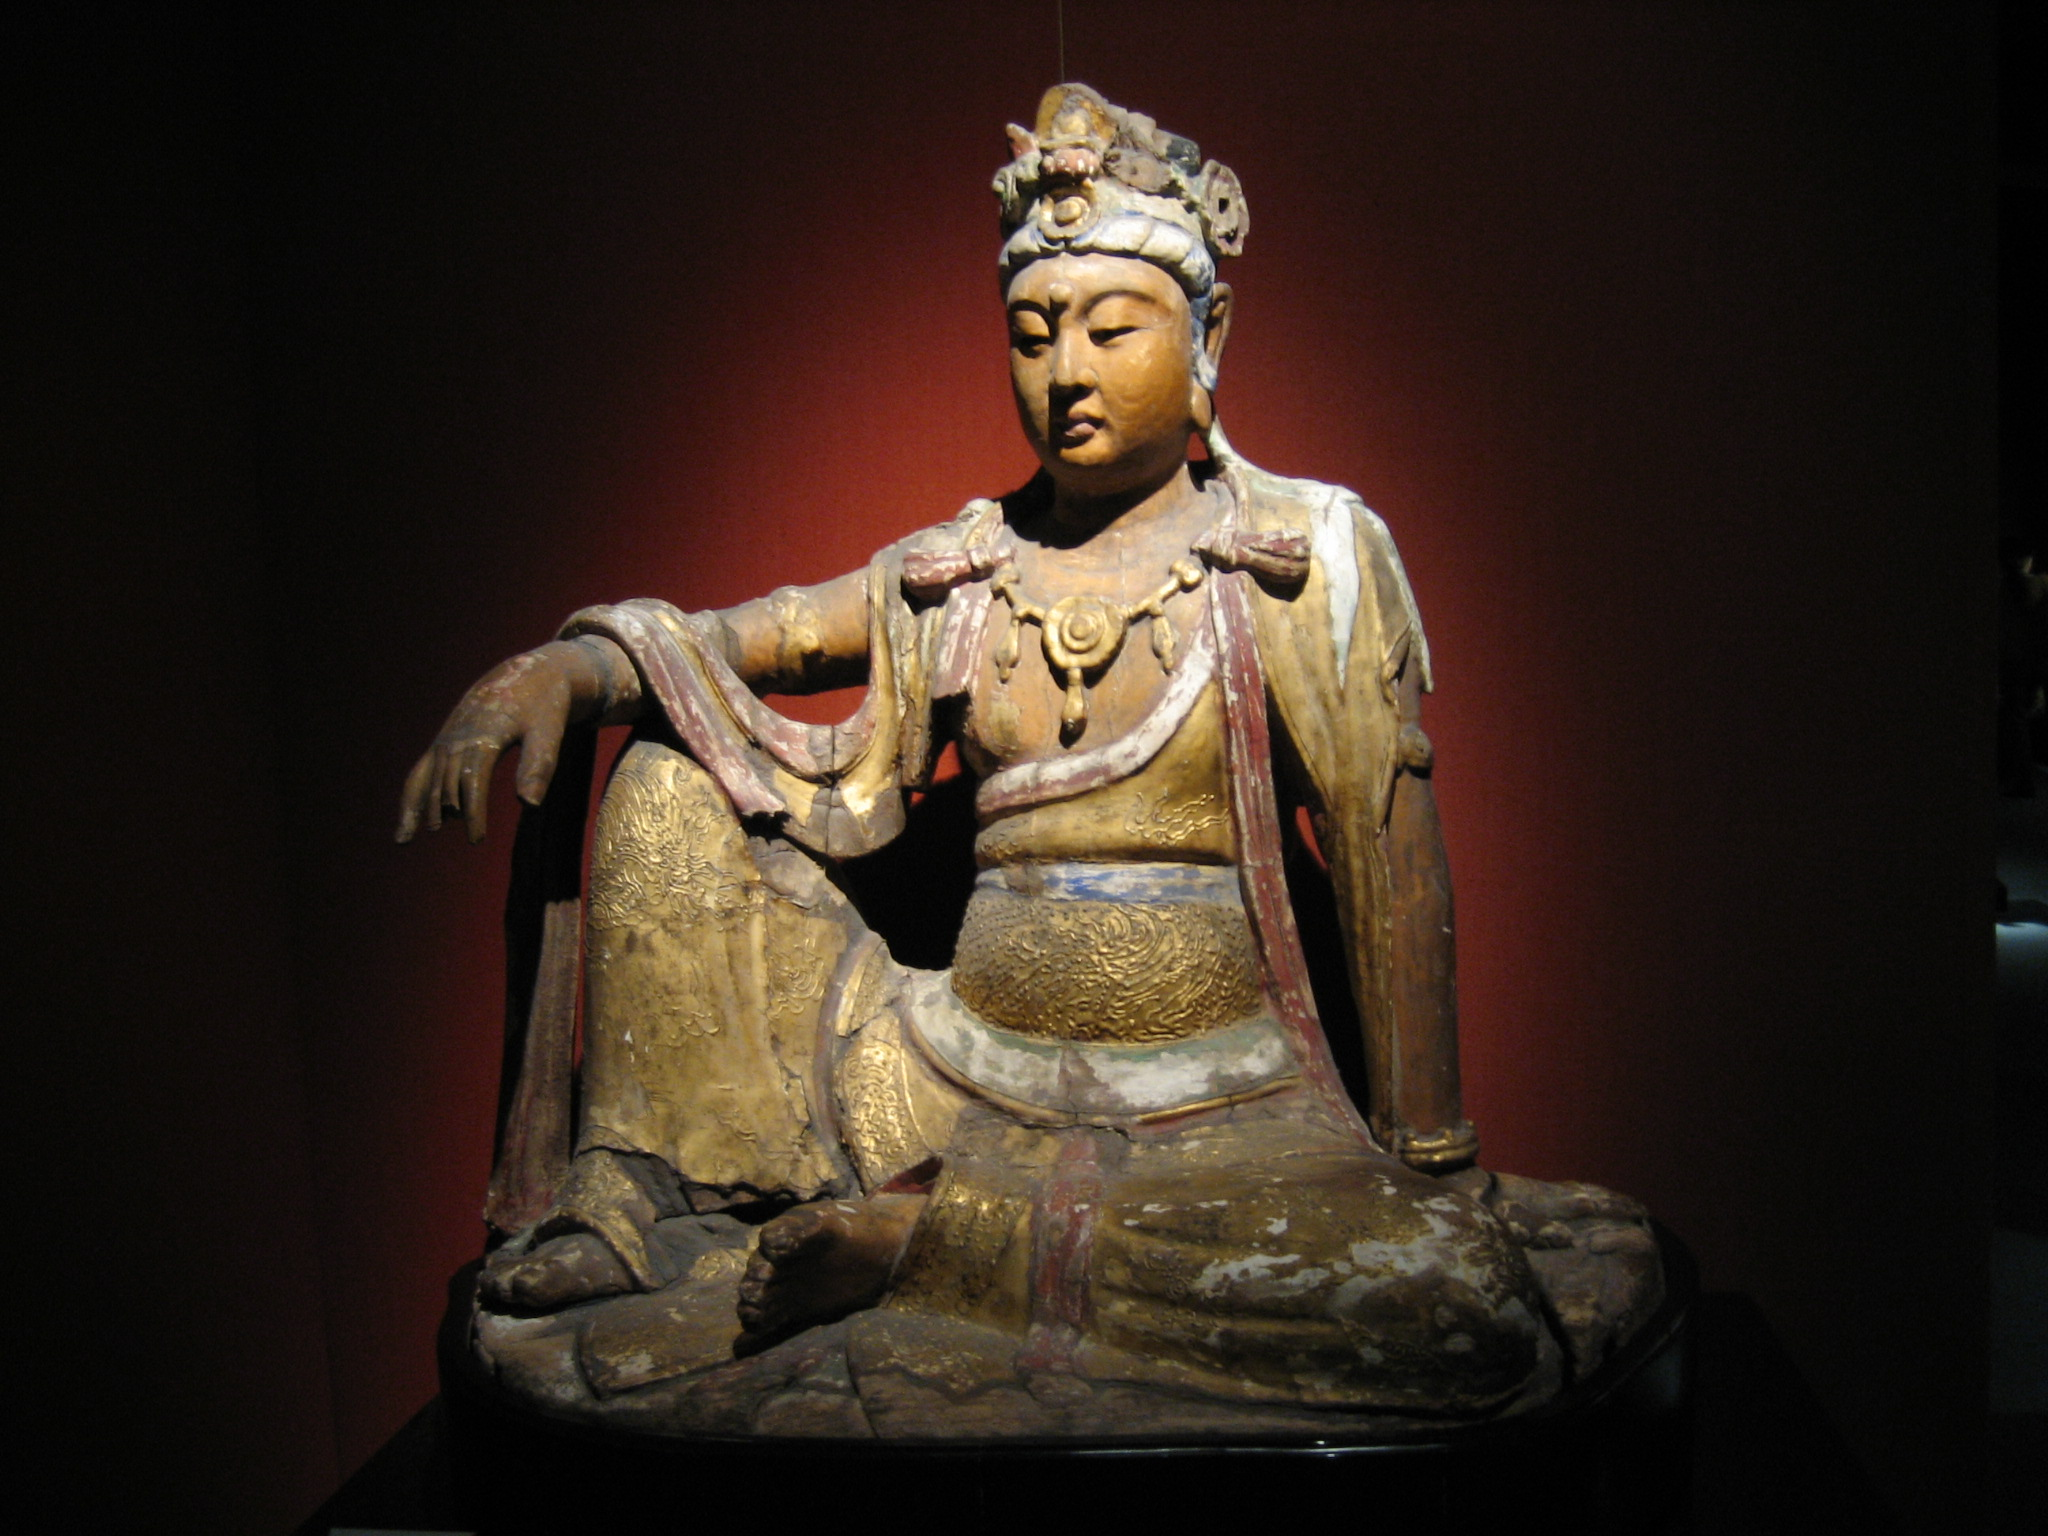 buddhist single women in pilot mountain Toast single women over 50 interested in dating and are you single in toast and looking for a single woman over 50 to be your pilot mountain a zoosk.